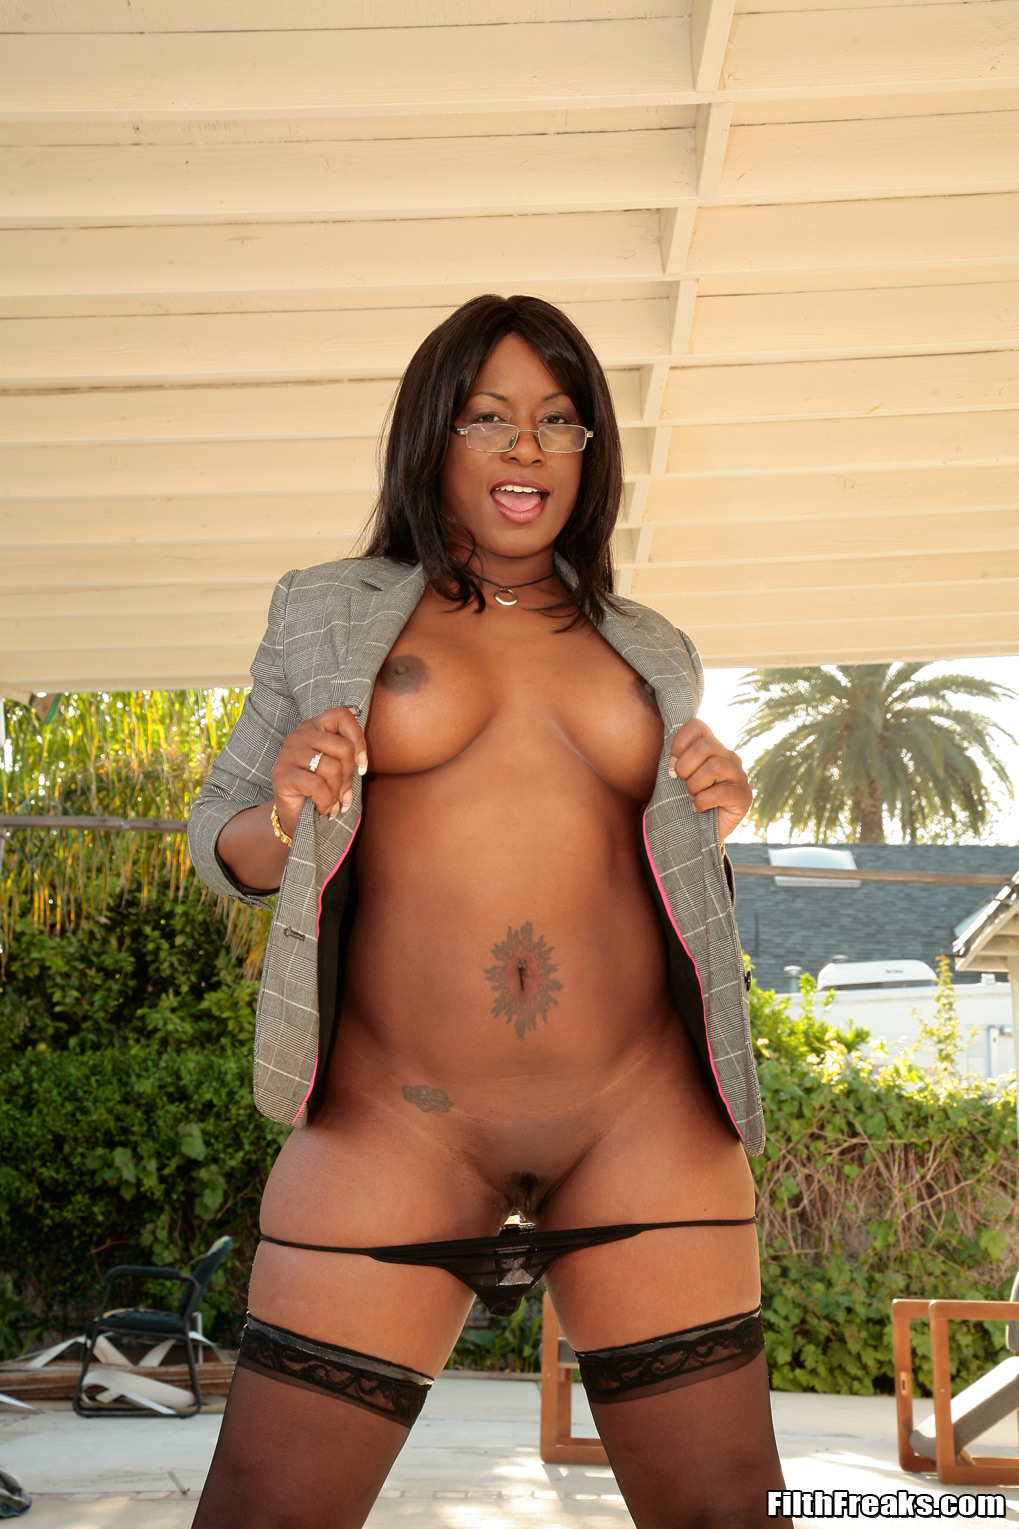 black milf ass porn Watch Black milf getting fucked in the ass.